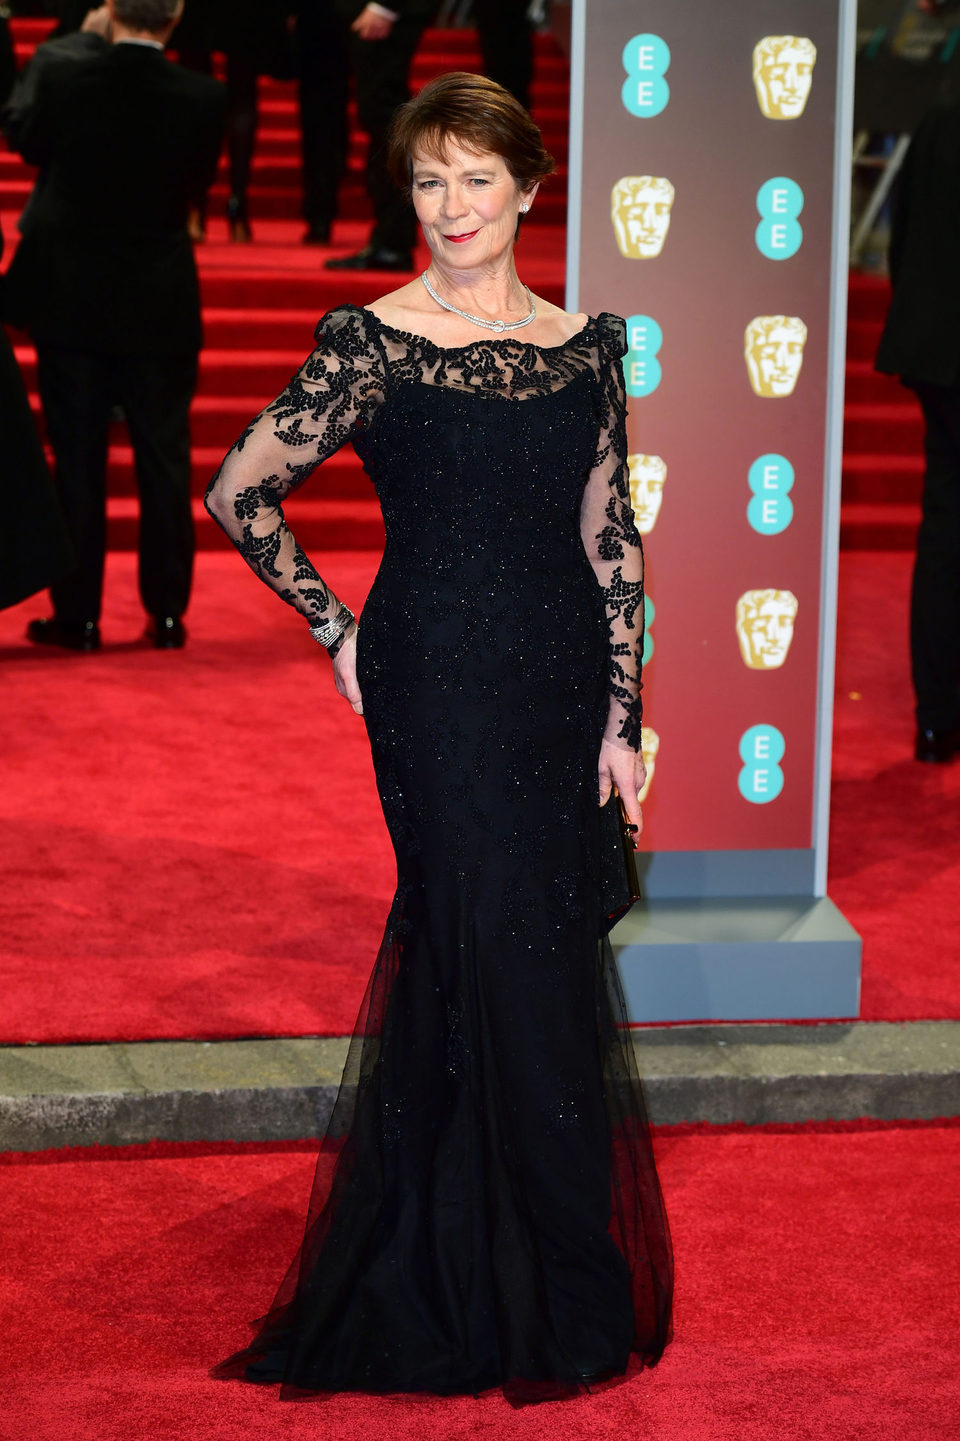 Celia Imrie at the BAFTA Awards' 2018 red carpet